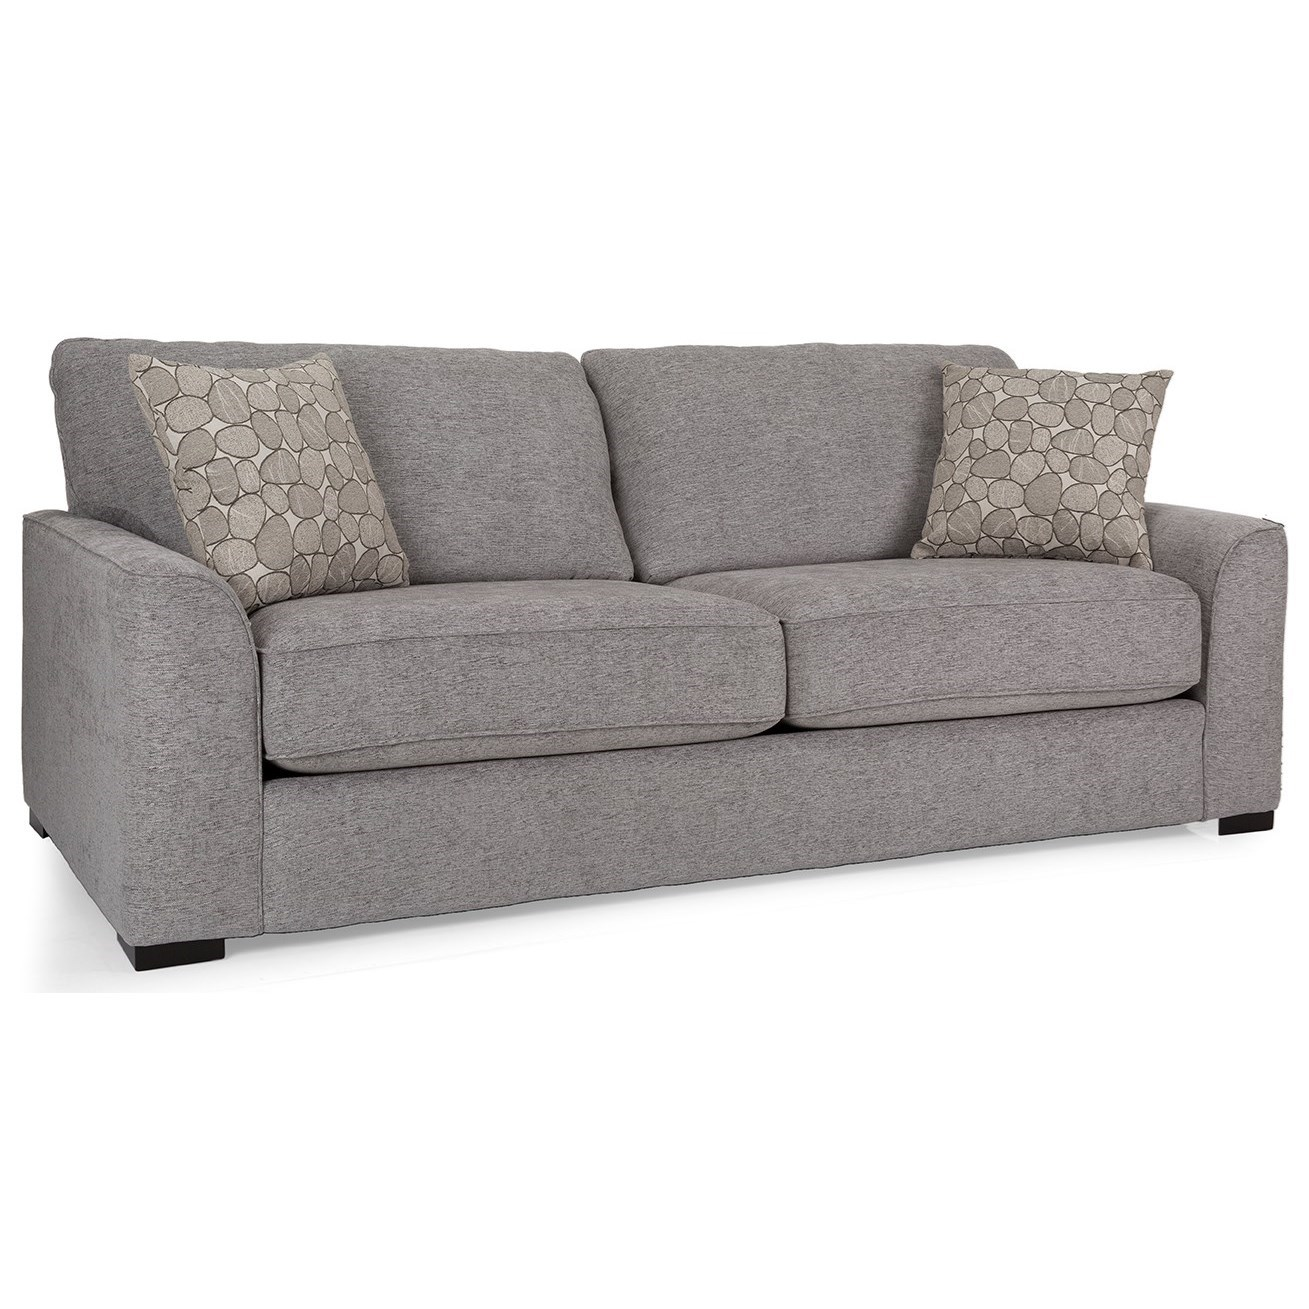 2786 Sofa by Decor-Rest at Stoney Creek Furniture